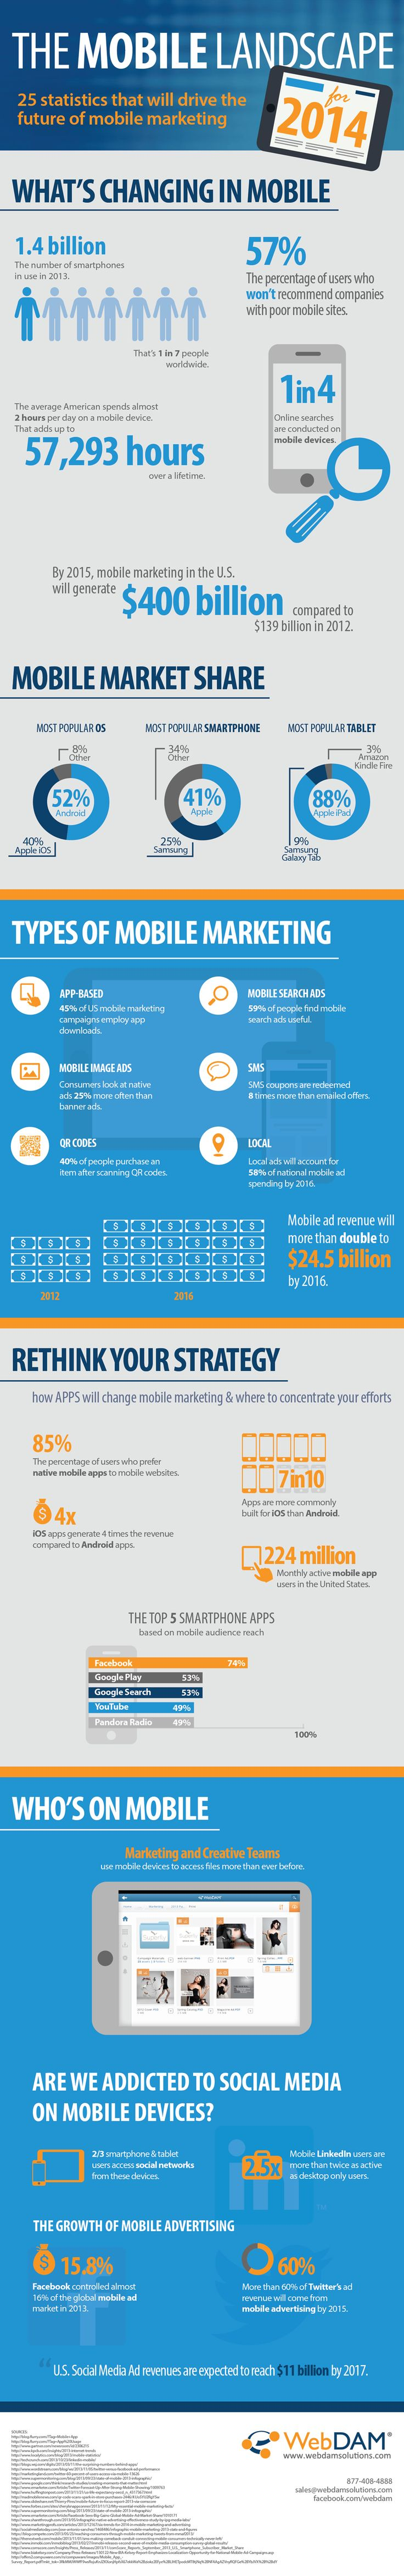 Mobile Marketing Infographic 20141 3 Biggest Changes That Will Influence Mobile Marketing (Infographic)